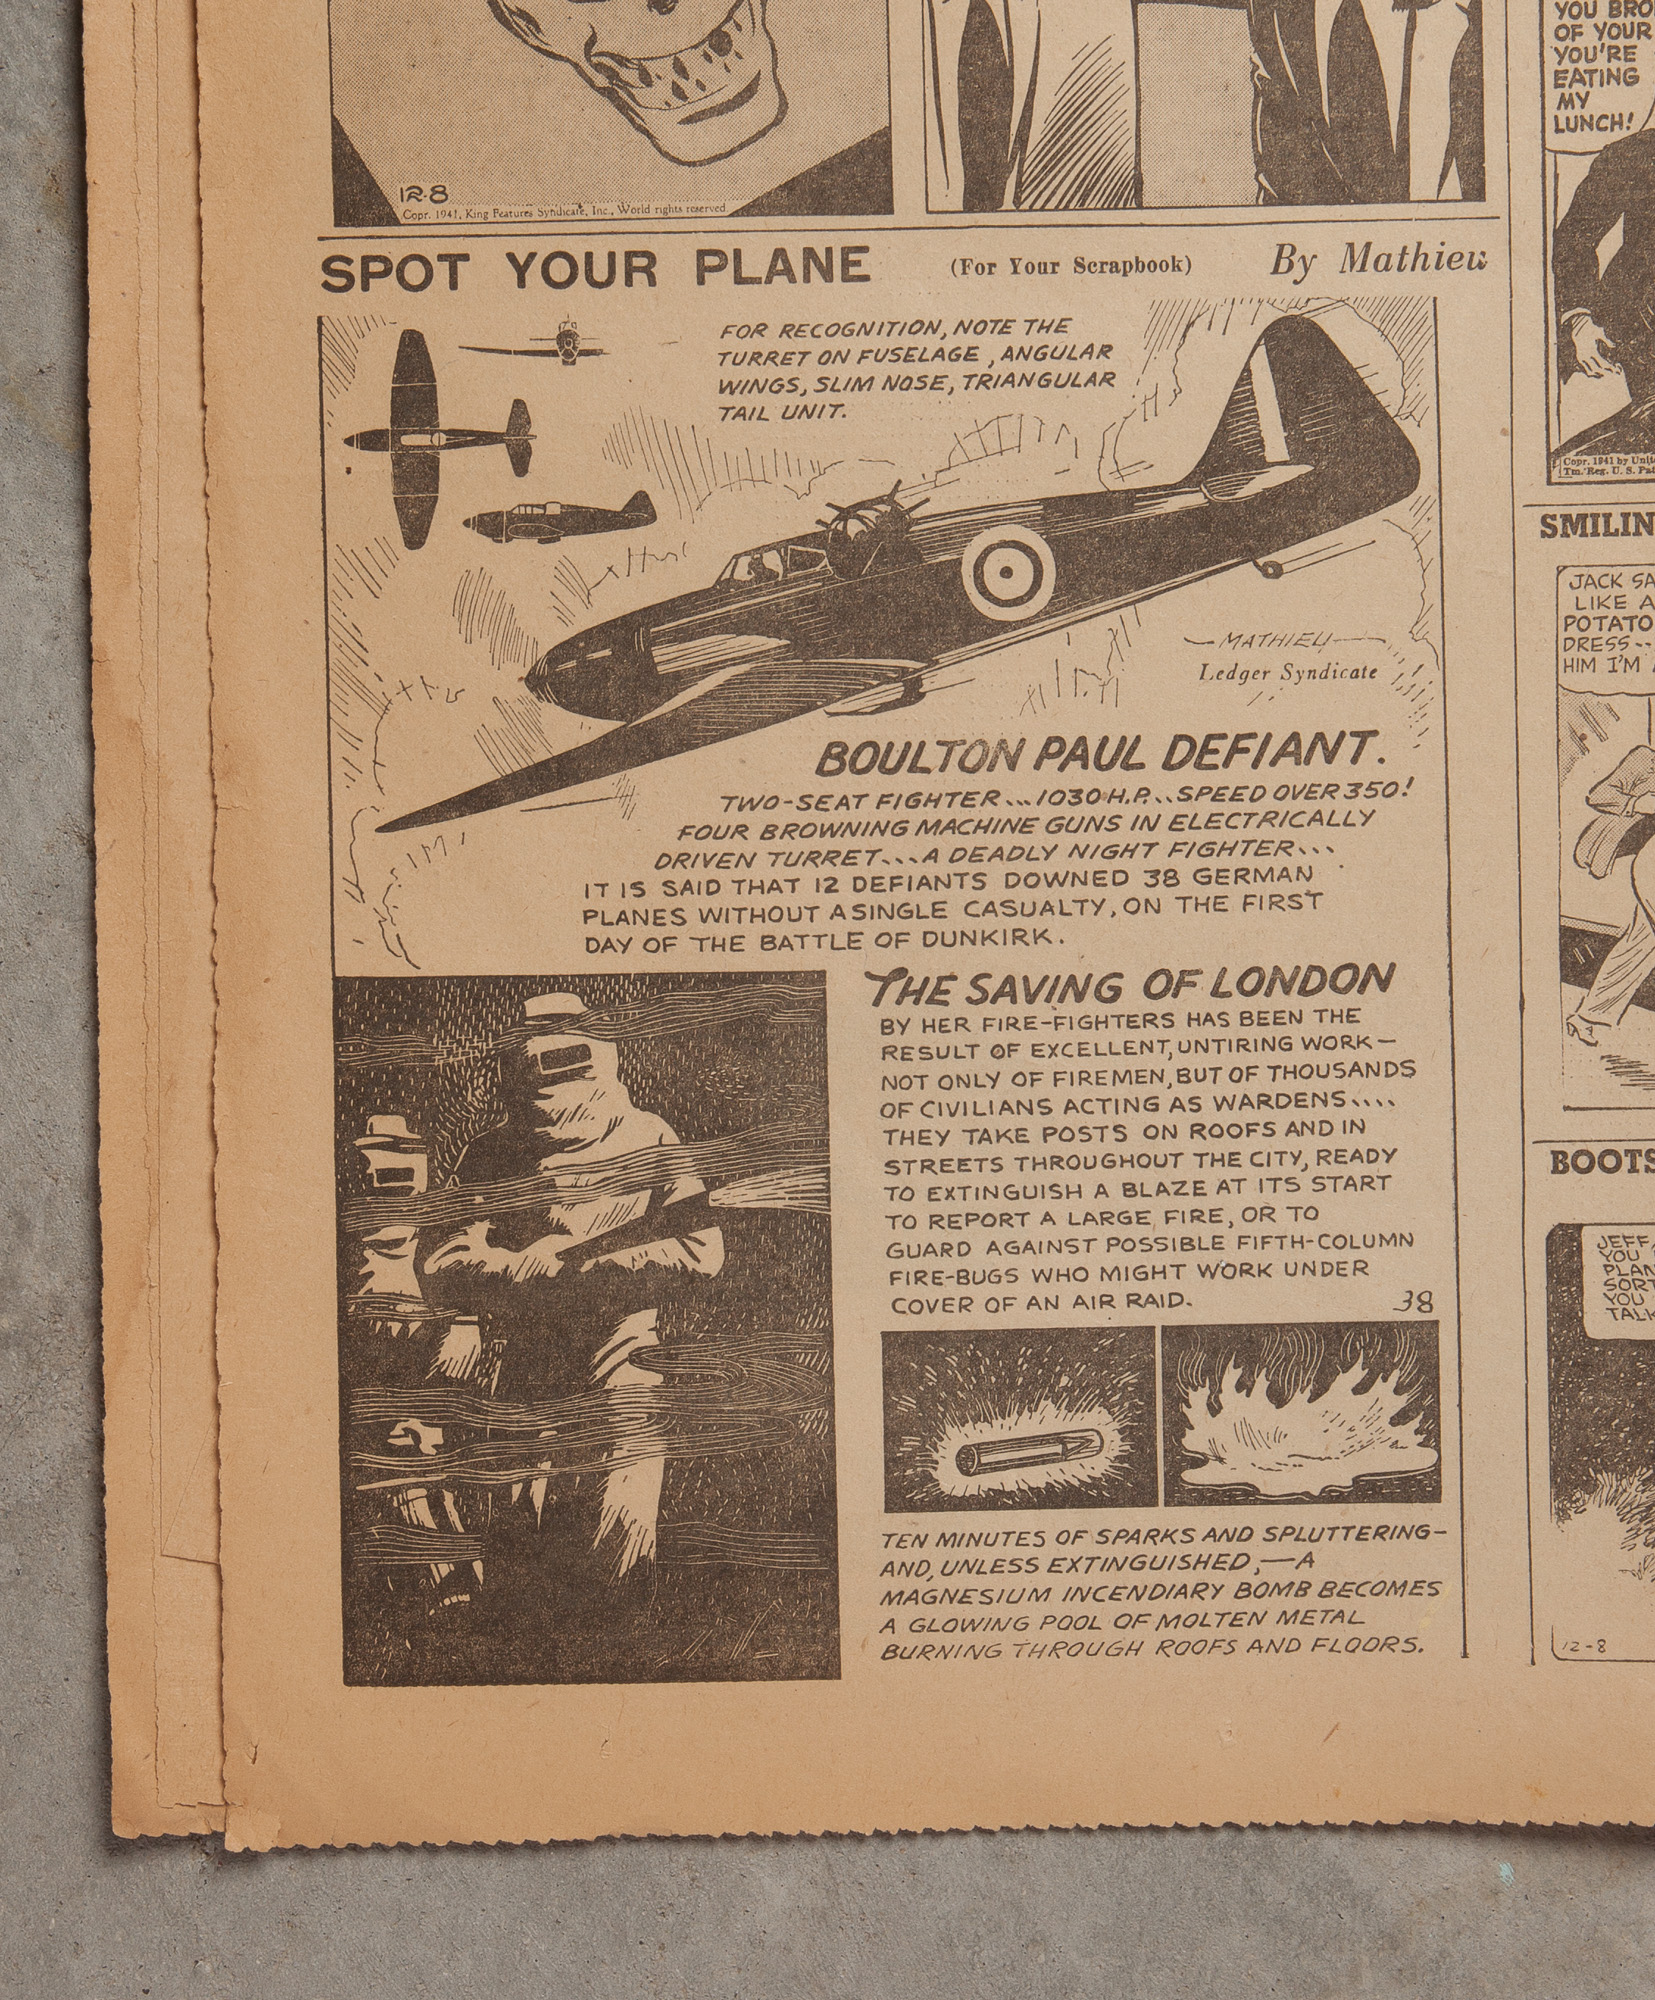 pearl-harbor-newspaper-5.jpg